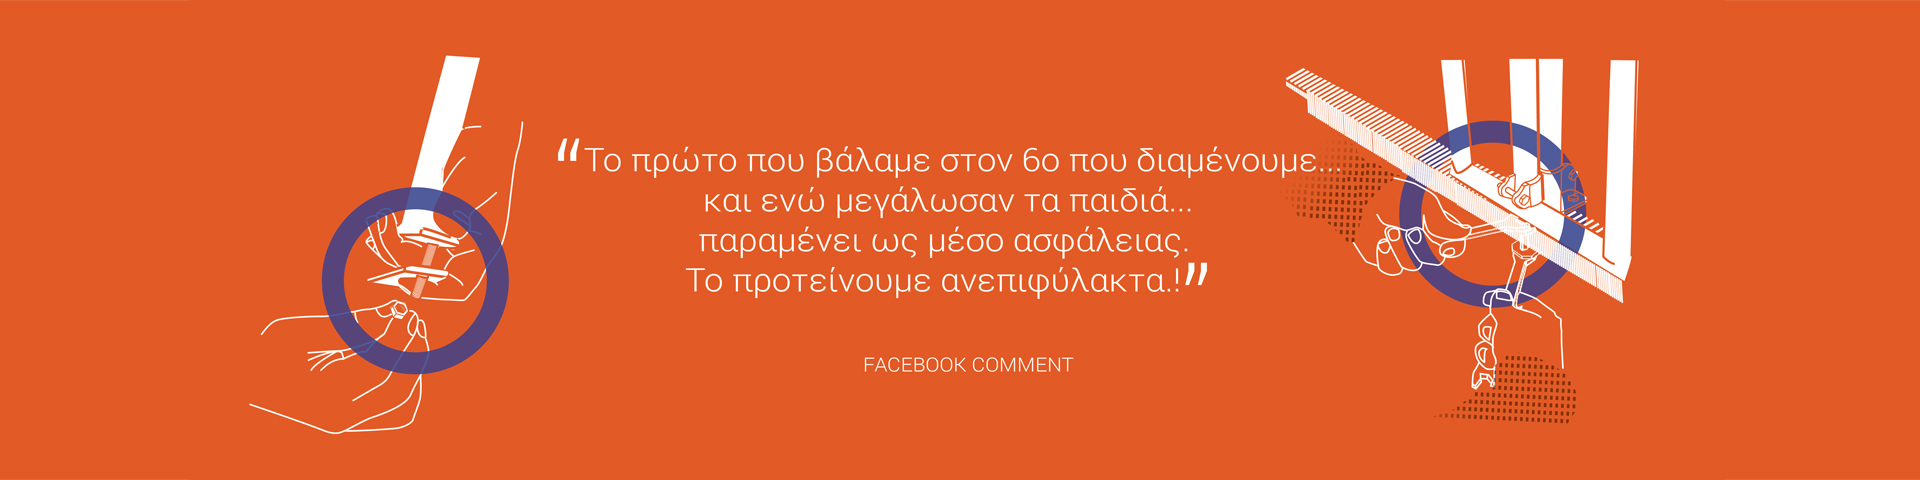 1920 480 orange PROTEX FACEBOOK COMMENT